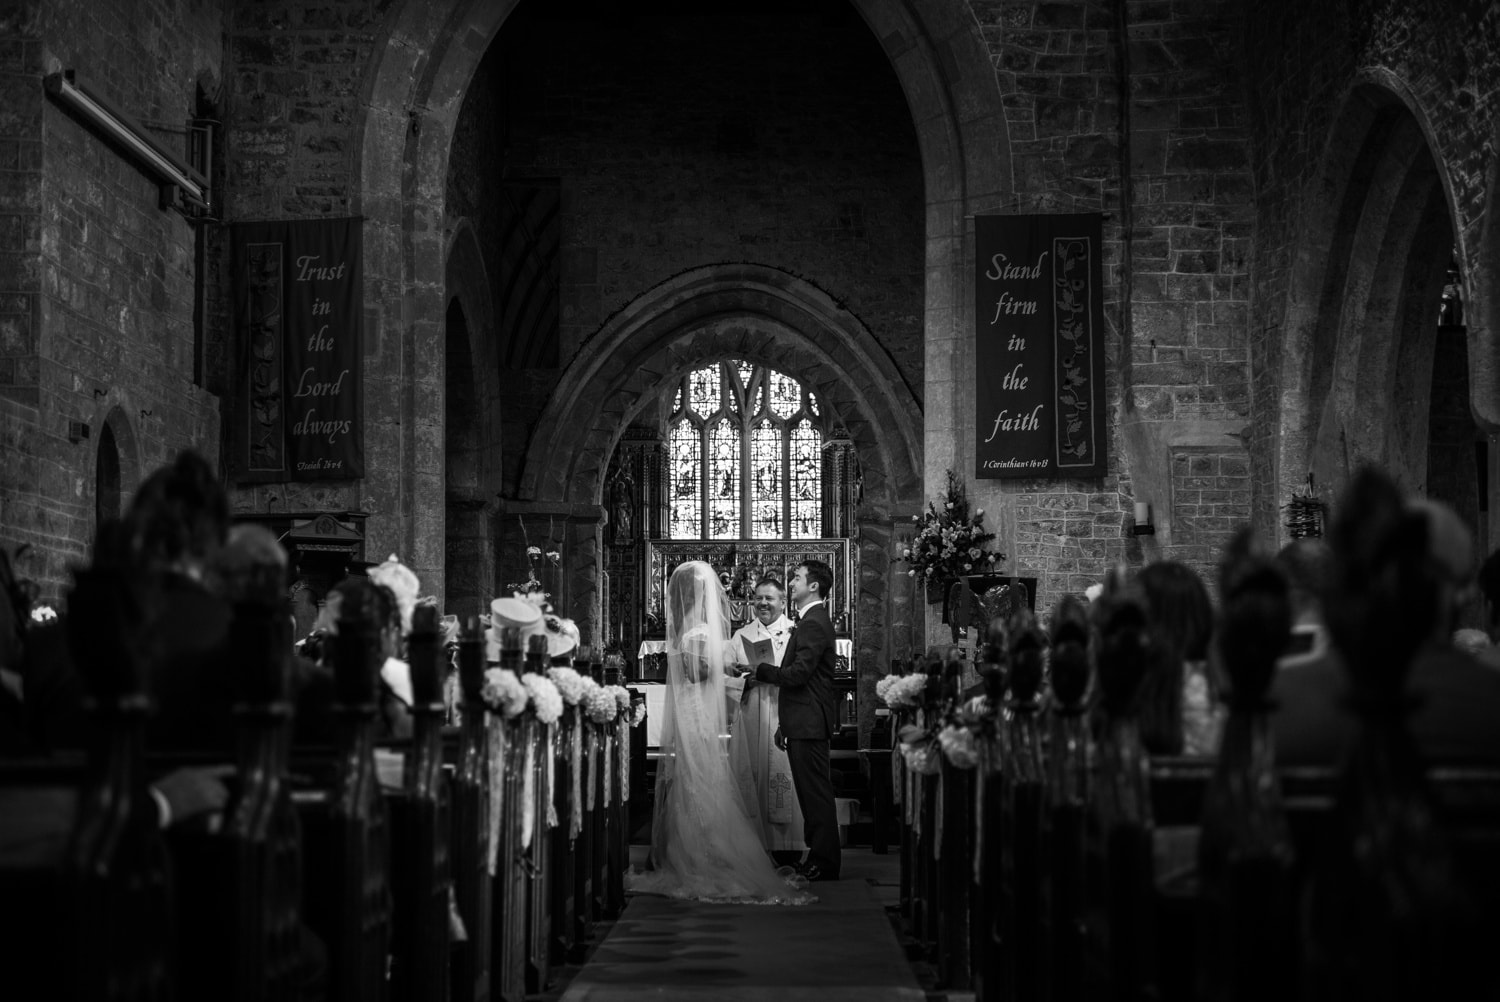 Wedding ceremony at at St Andrews Church in Clevedon, Somerset